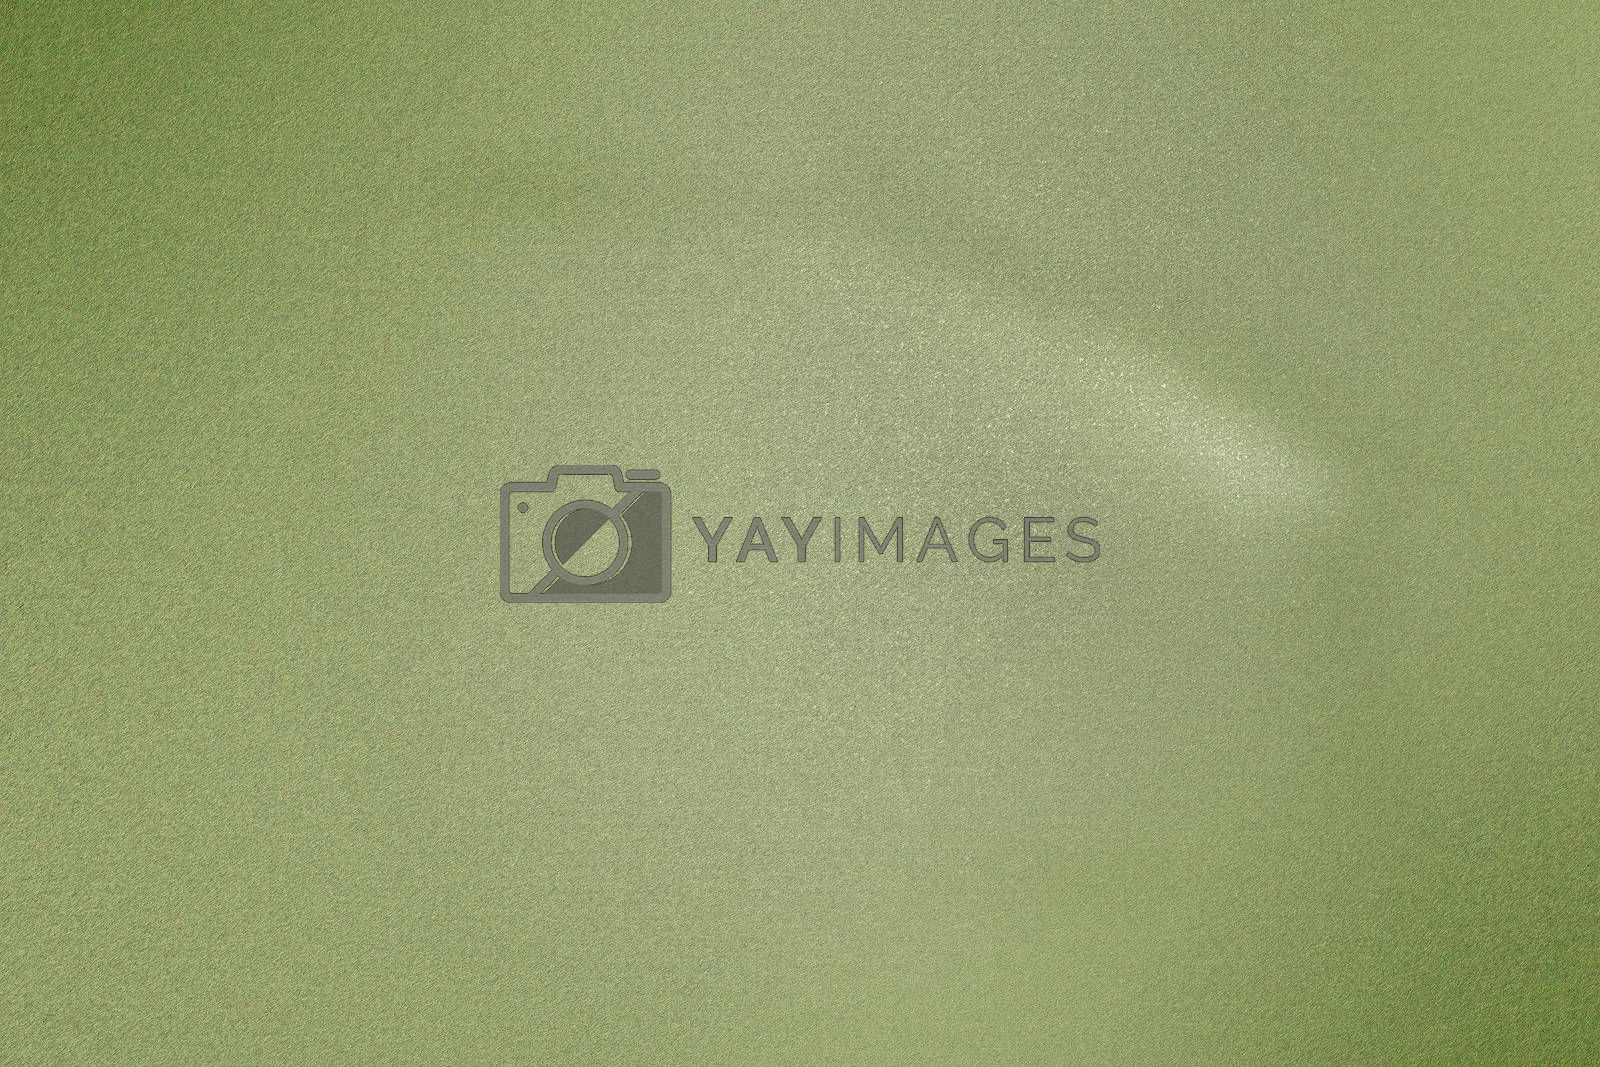 Royalty free image of Light green rough metal wall, abstract texture background by mouu007